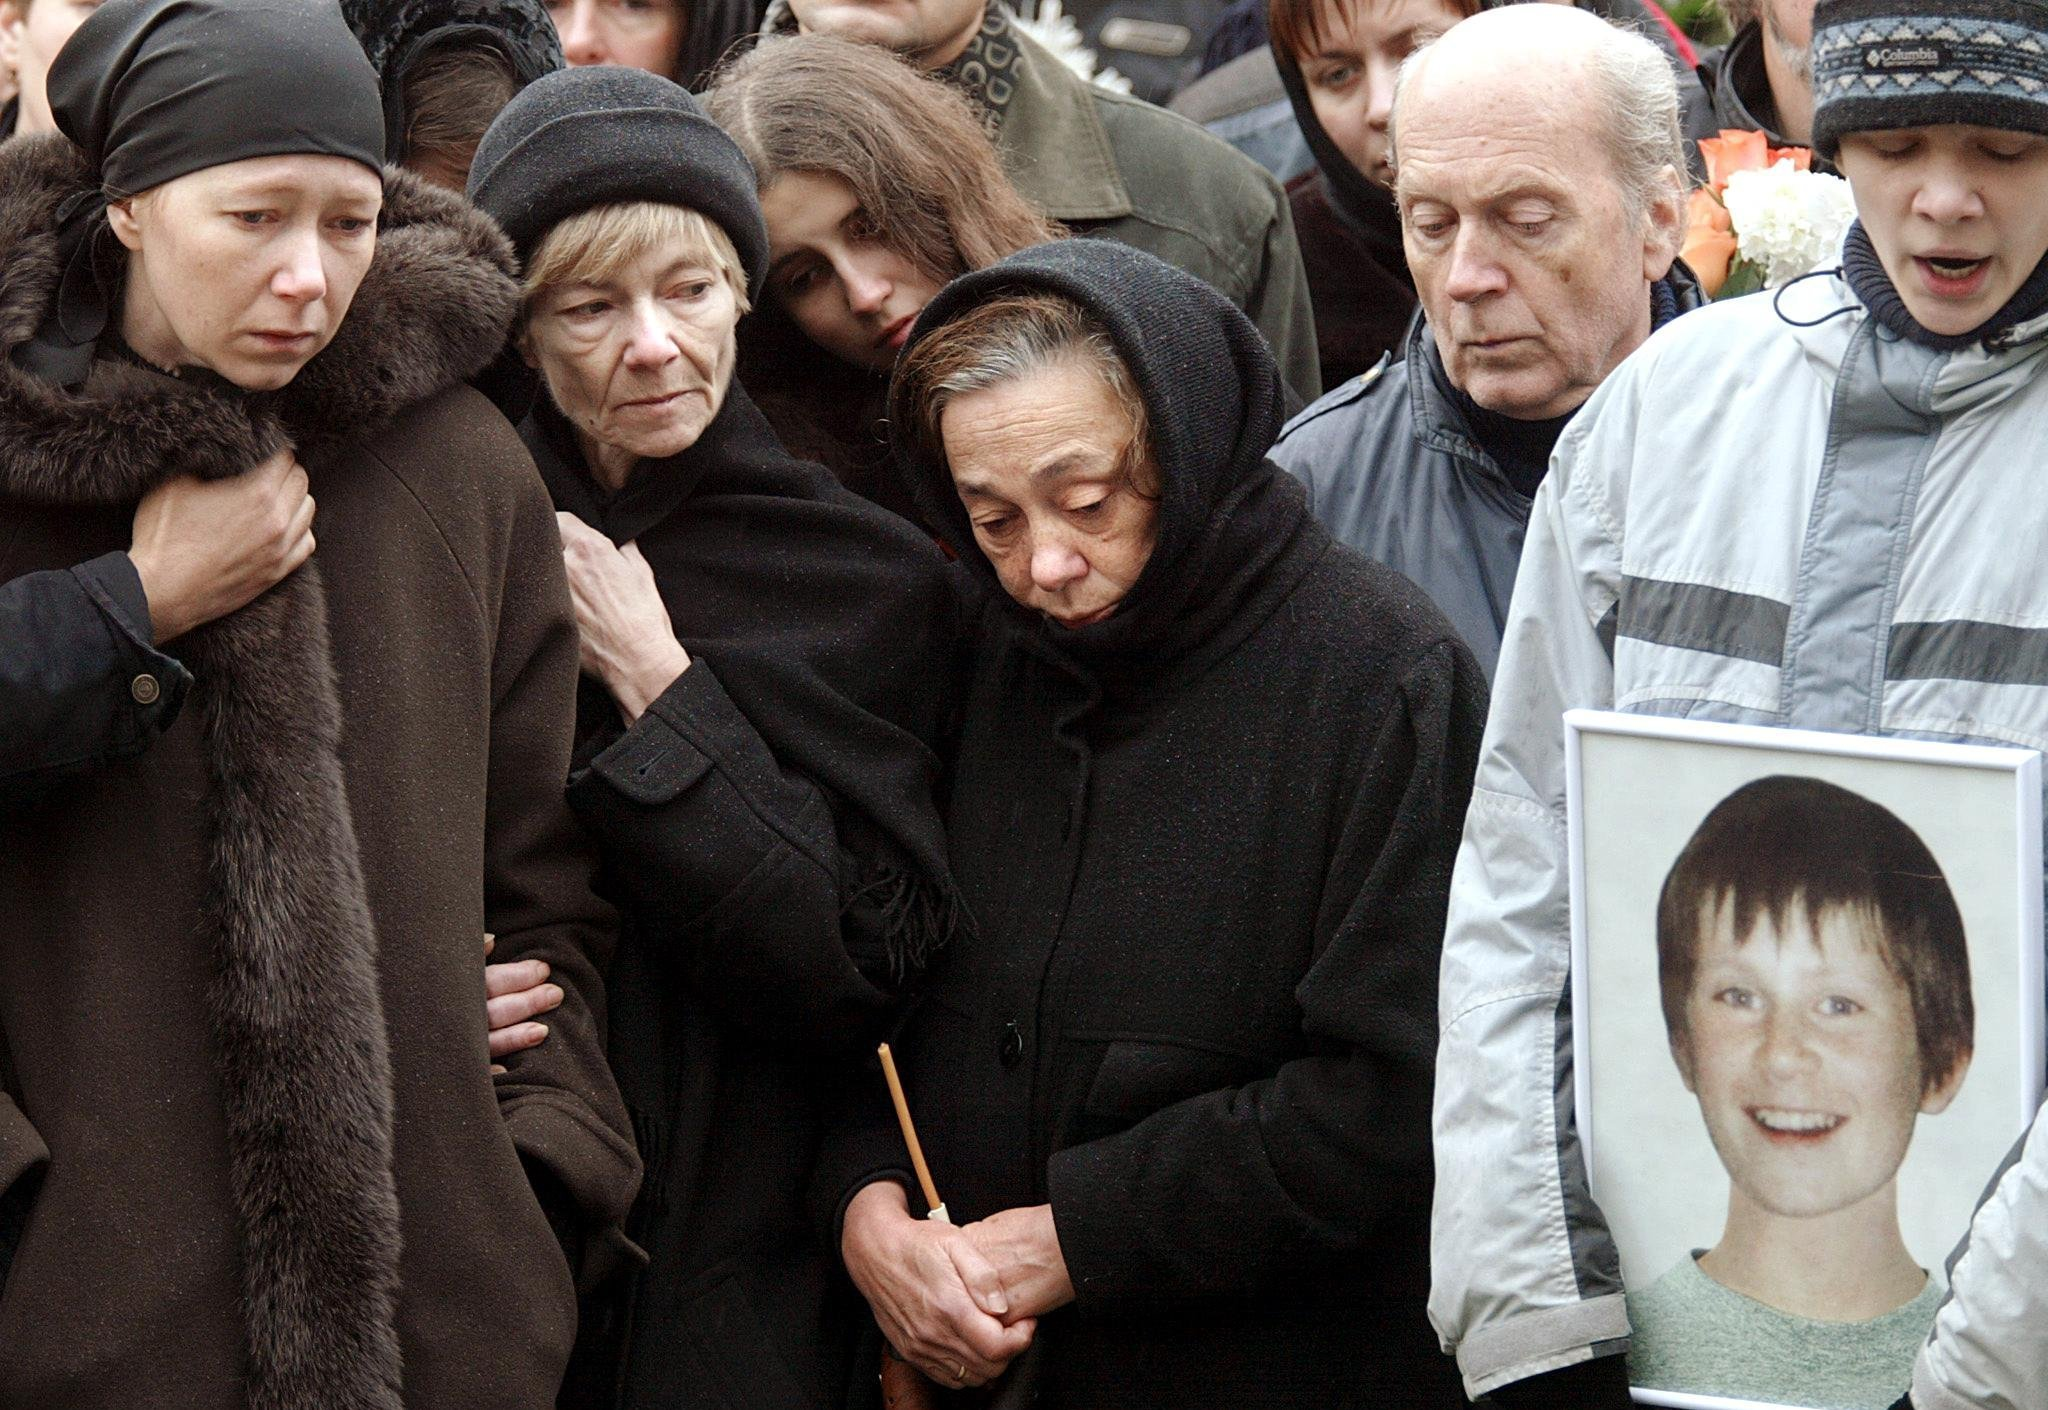 Relatives and friends of Arseny Kurilenko (portrait at R), 13, a member of the cast of the Nord-Ost show mourn during his funeral in Moscow, 30 October 2002. (File)